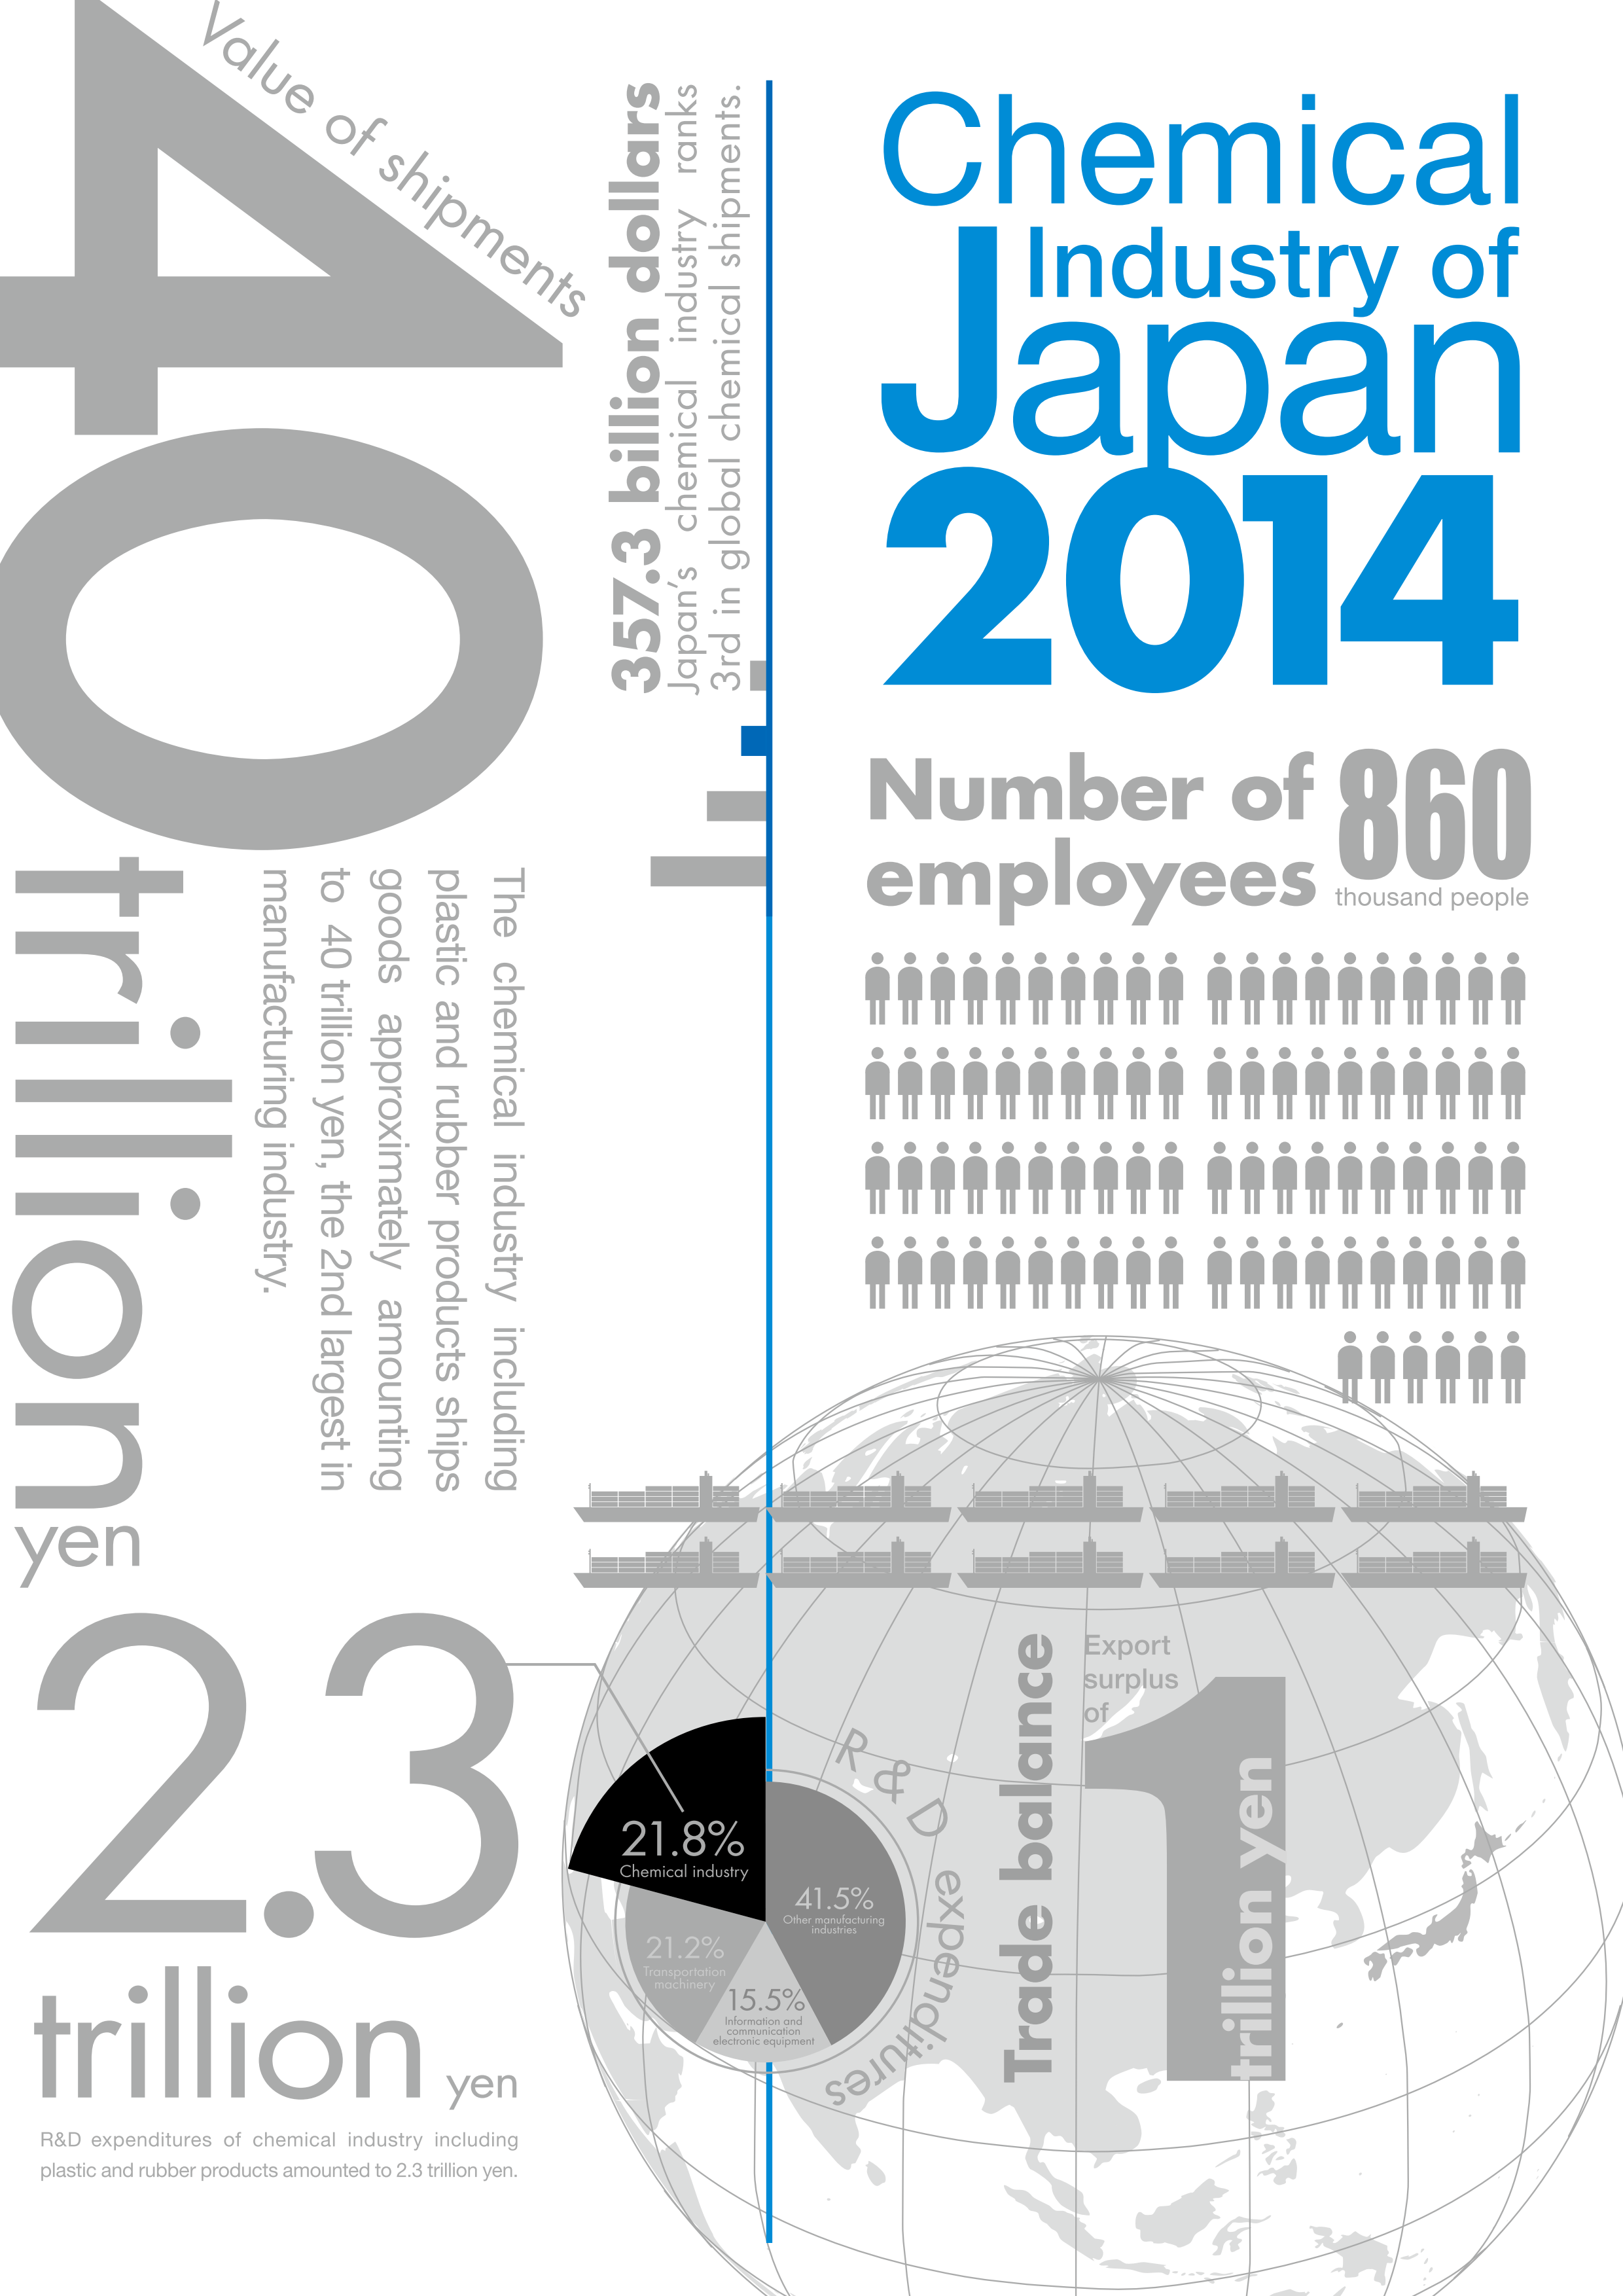 2014 CHEMICAL INDUSTRY OF JAPAN IN GRAPHS